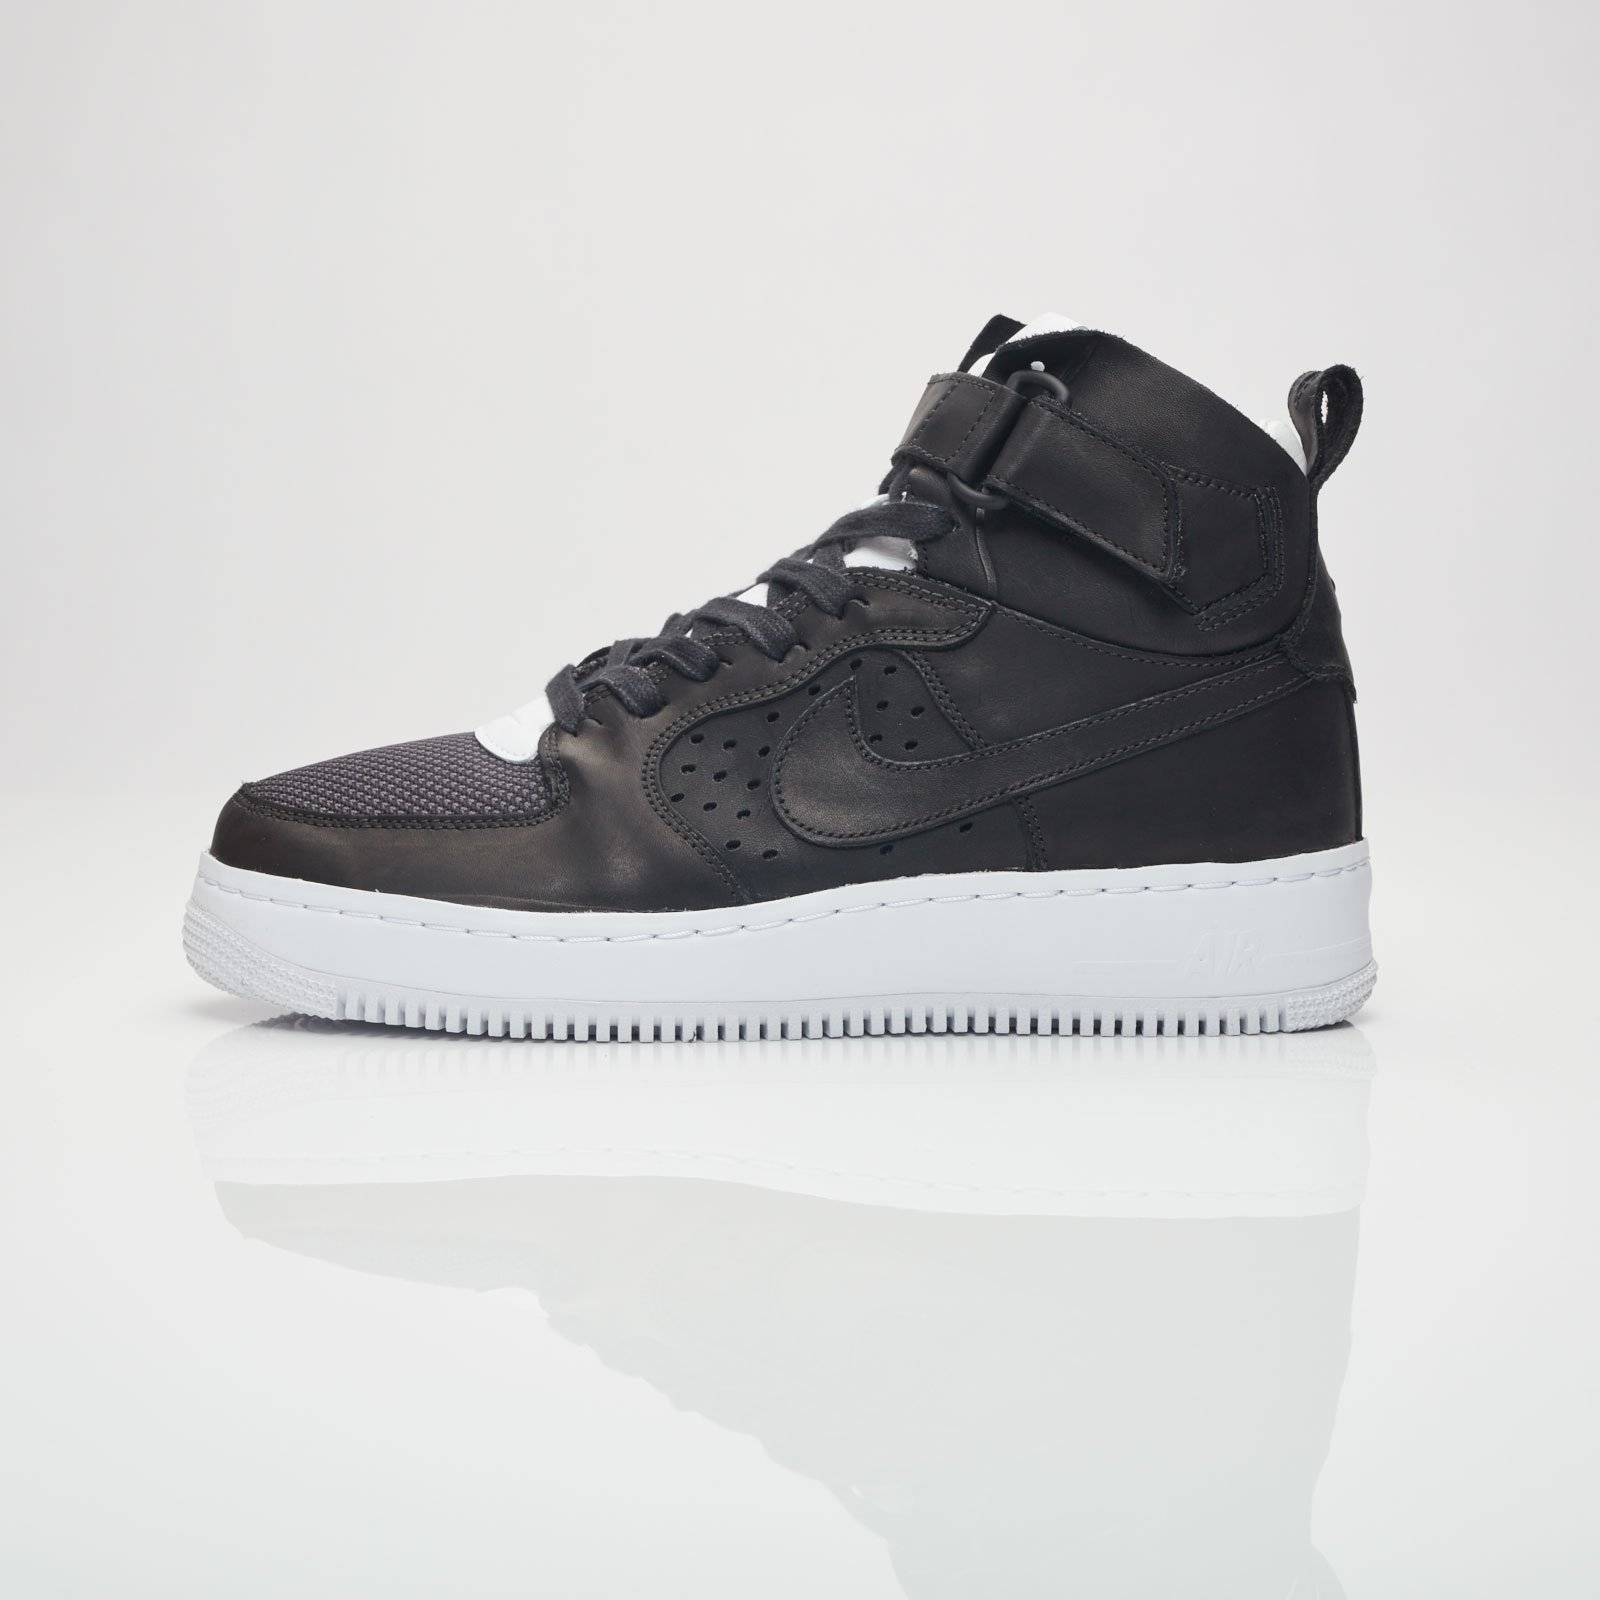 87a62962e00326 Nike Air Force 1 Hi Cmft Tc Sp - 917494-001 - Sneakersnstuff ...